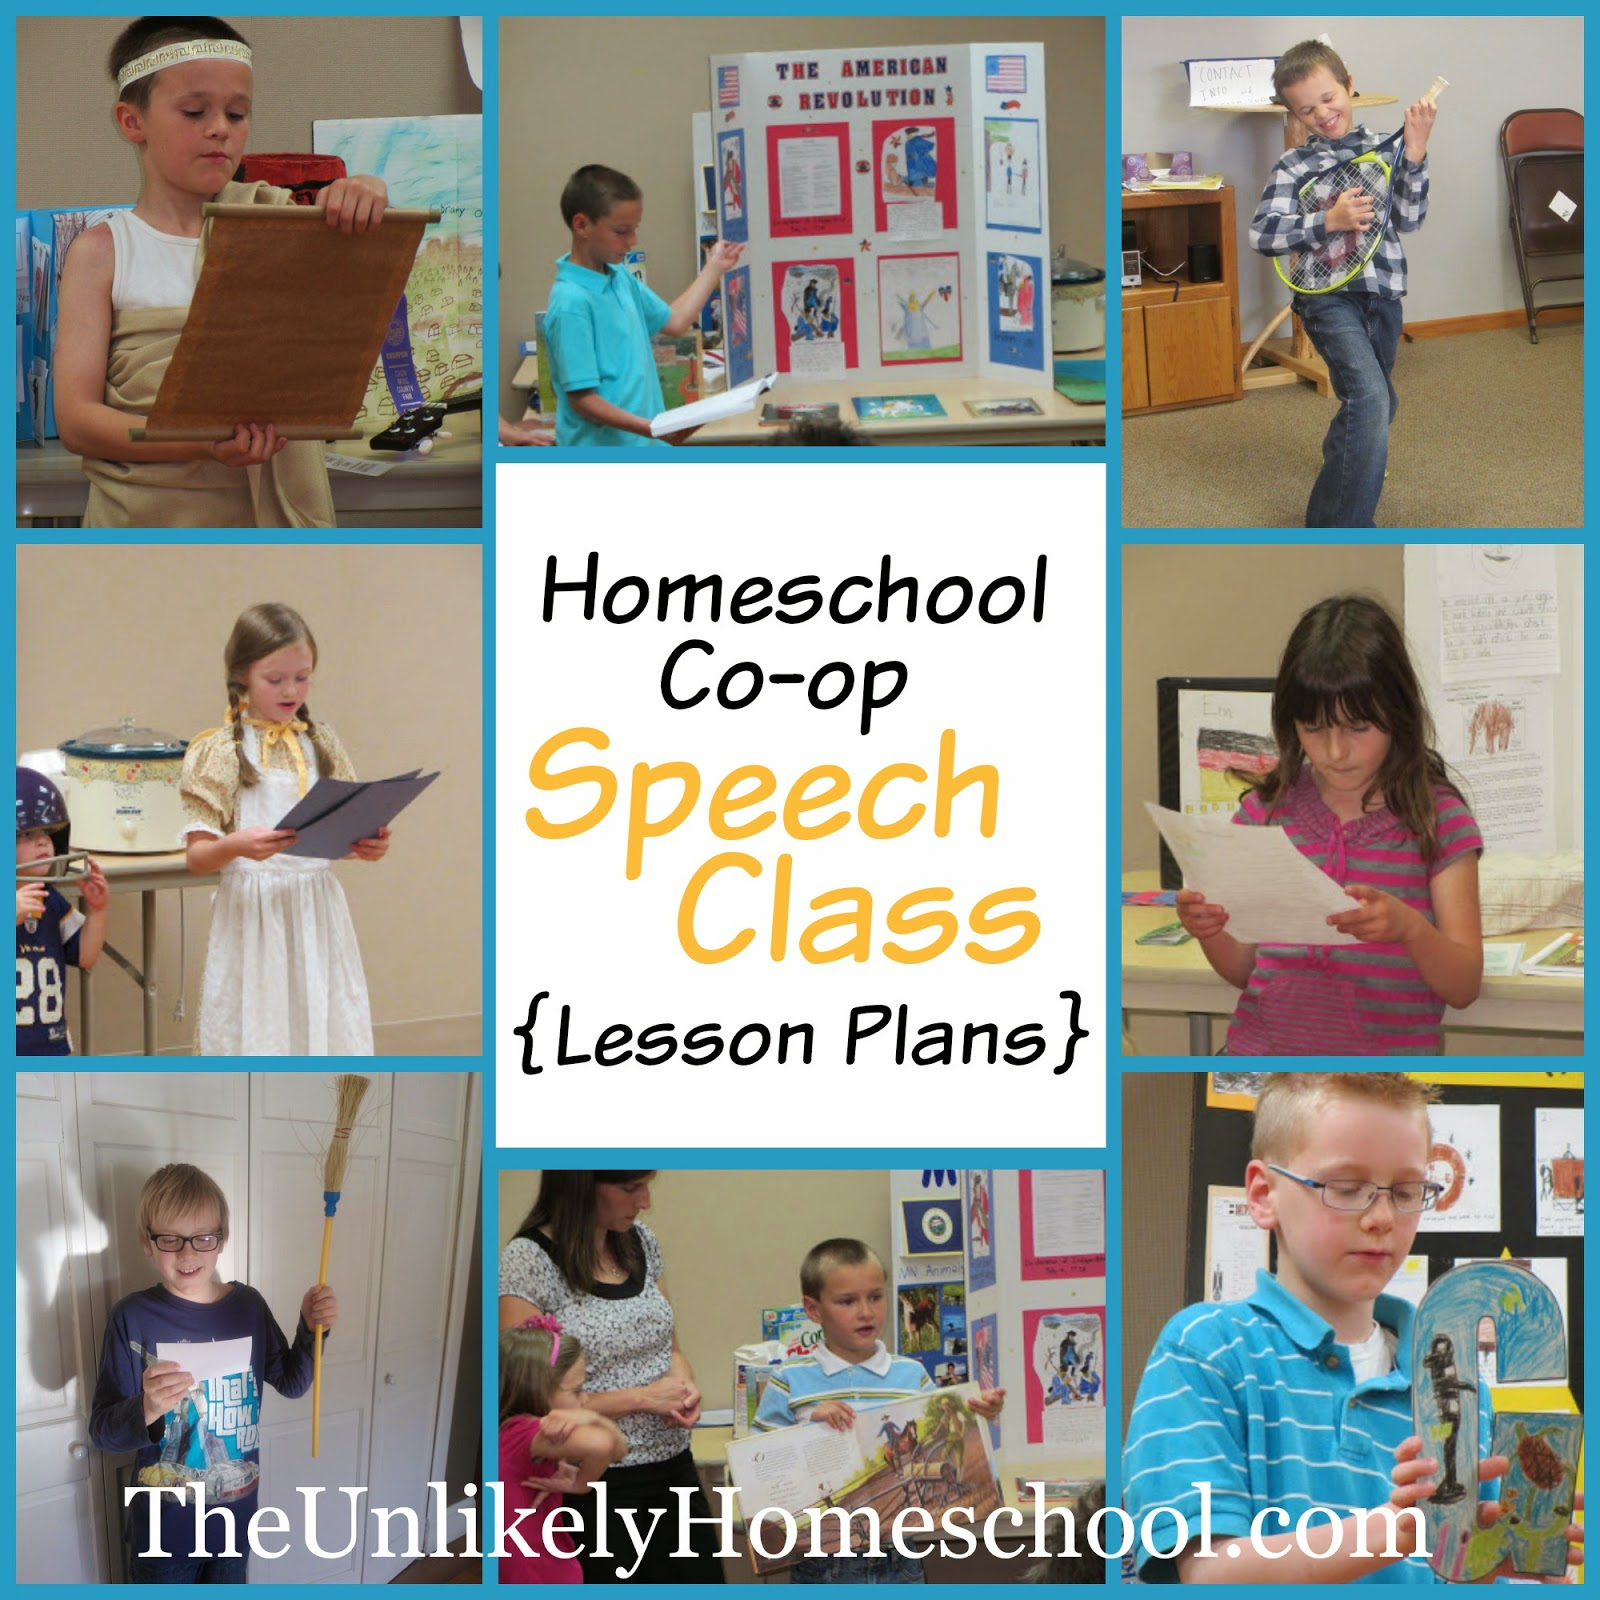 Homeschool Co-op Speech Class {Lesson Plans} The Unlikely Homeschool